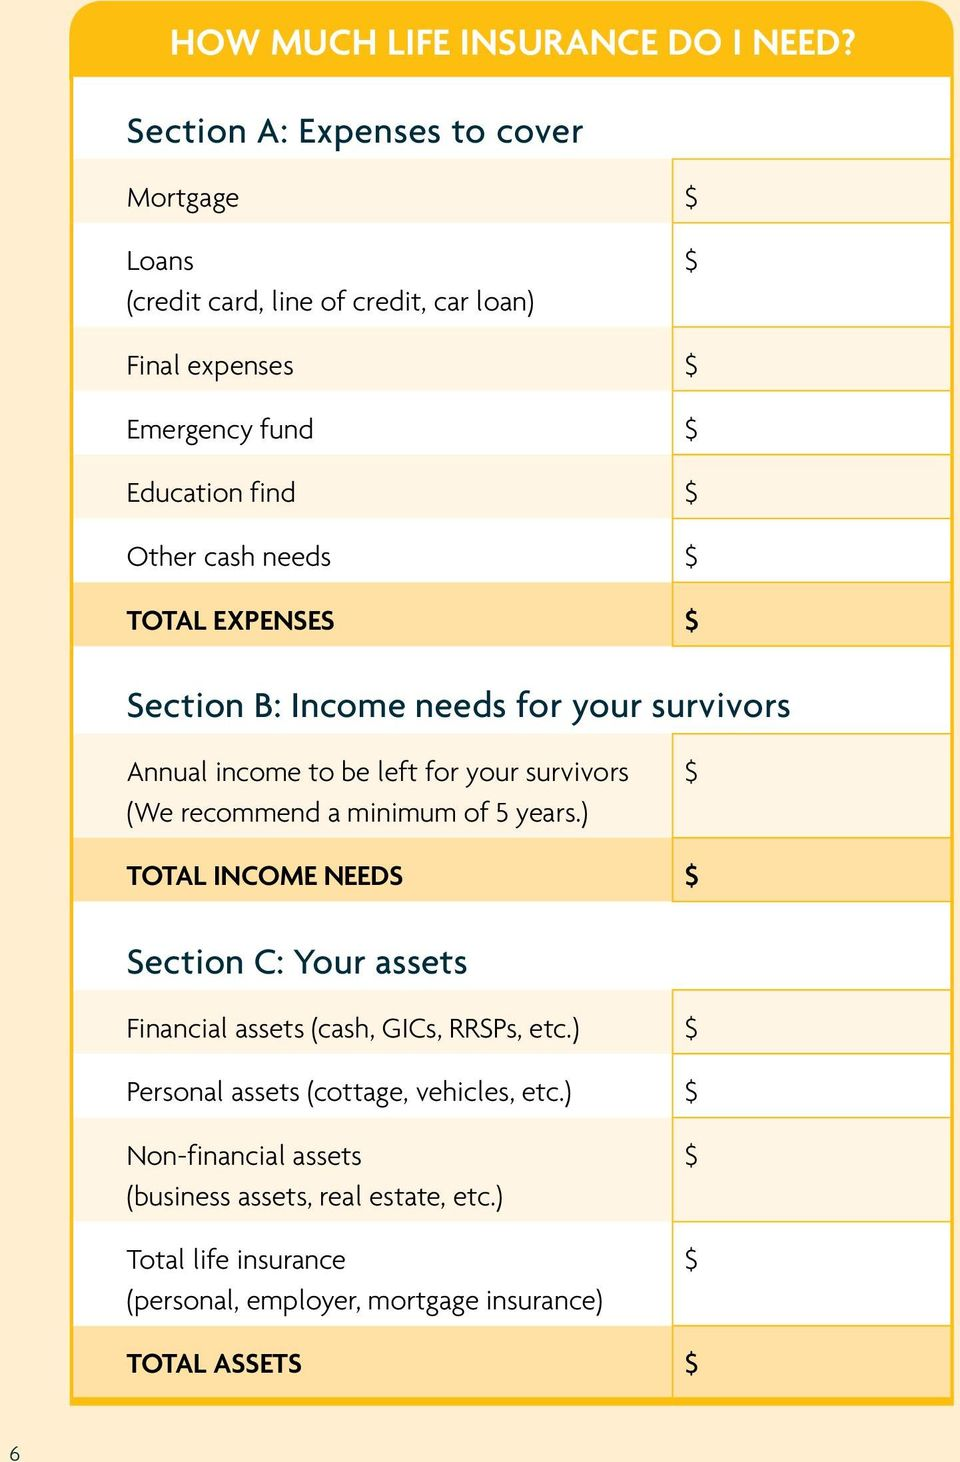 needs $ Total Expenses $ Section B: Income needs for your survivors Annual income to be left for your survivors (We recommend a minimum of 5 years.